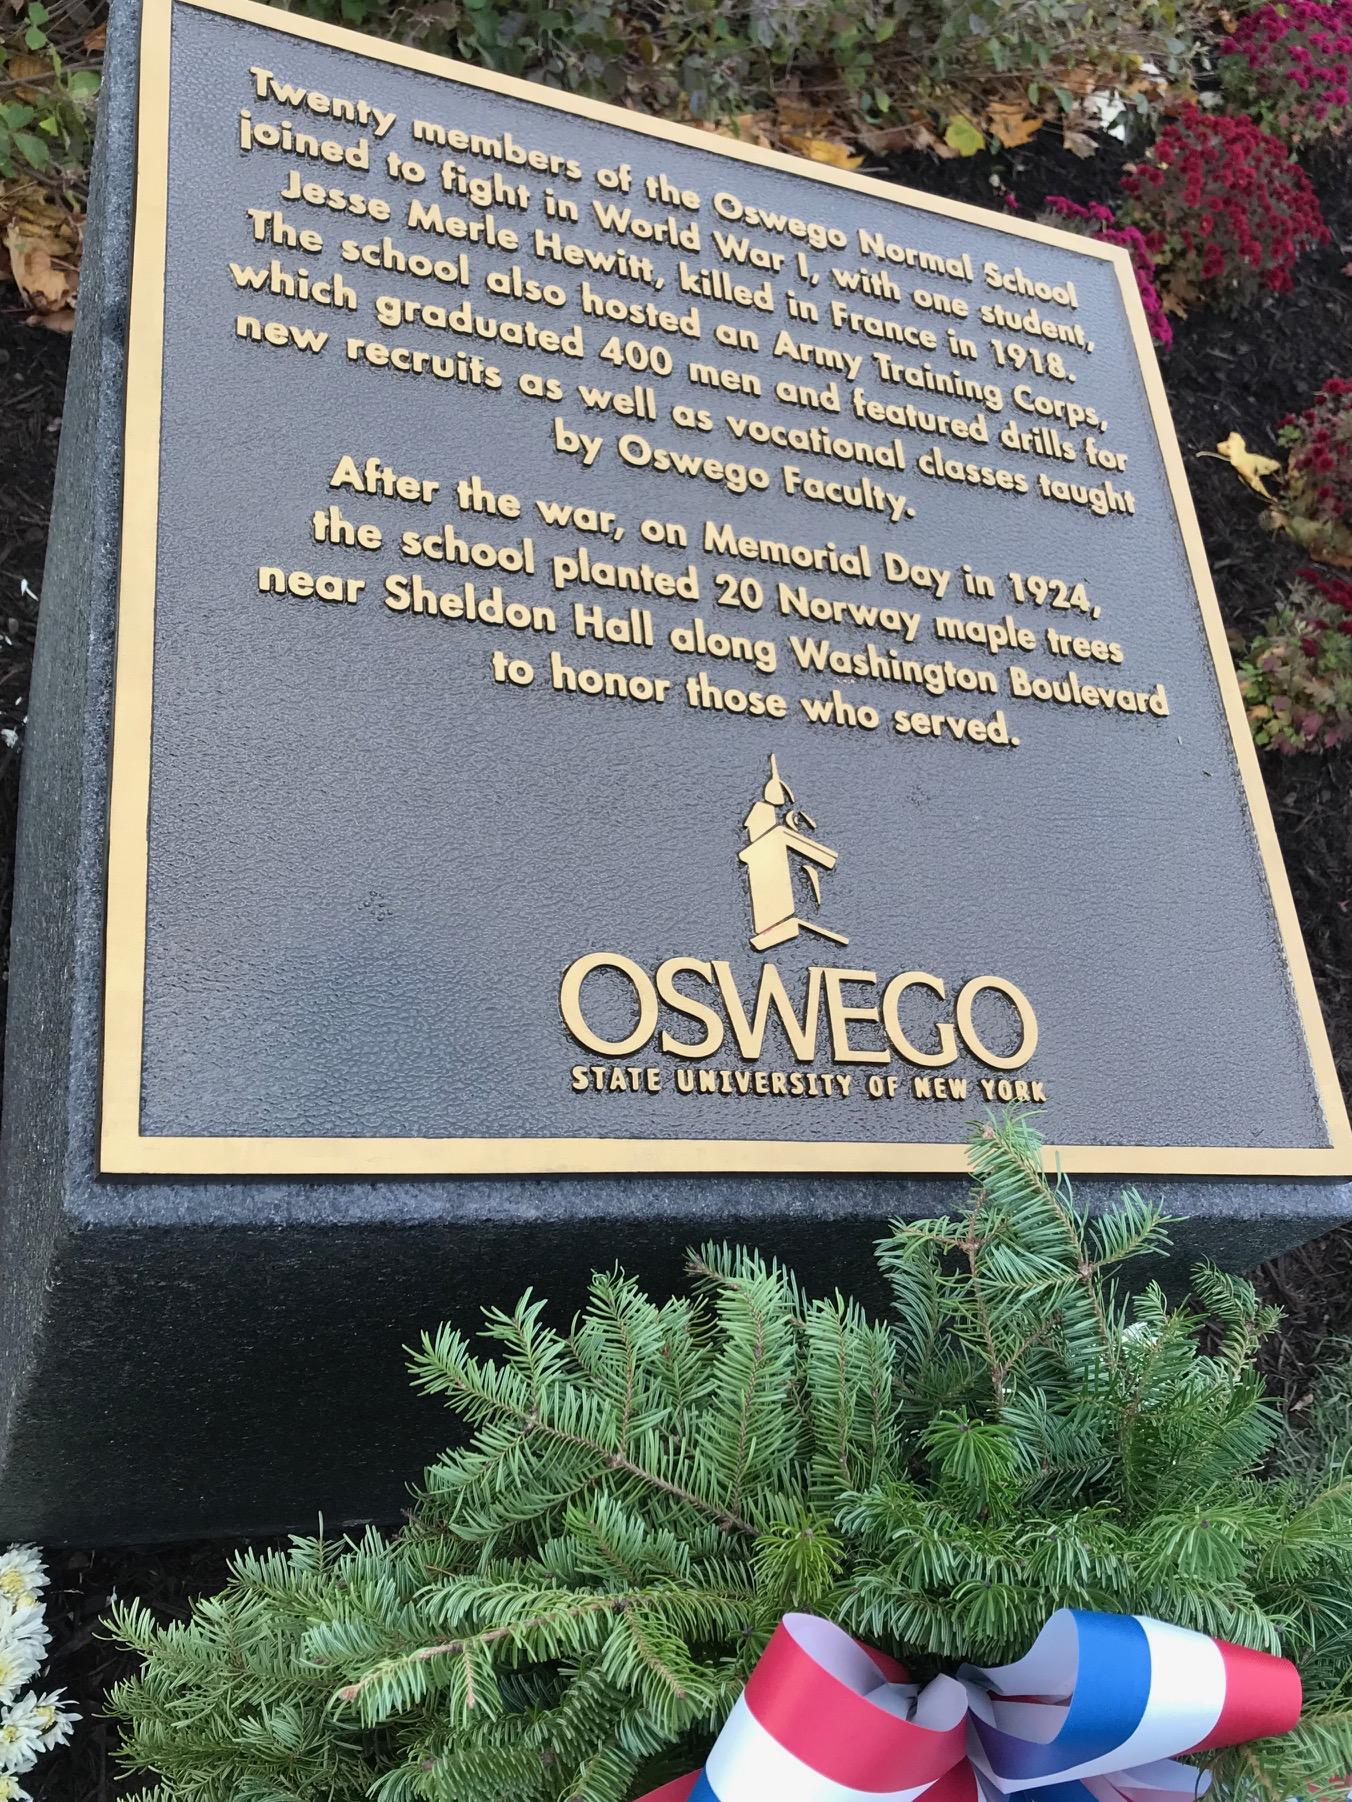 Plaque for World War I centennial -- text included above in story